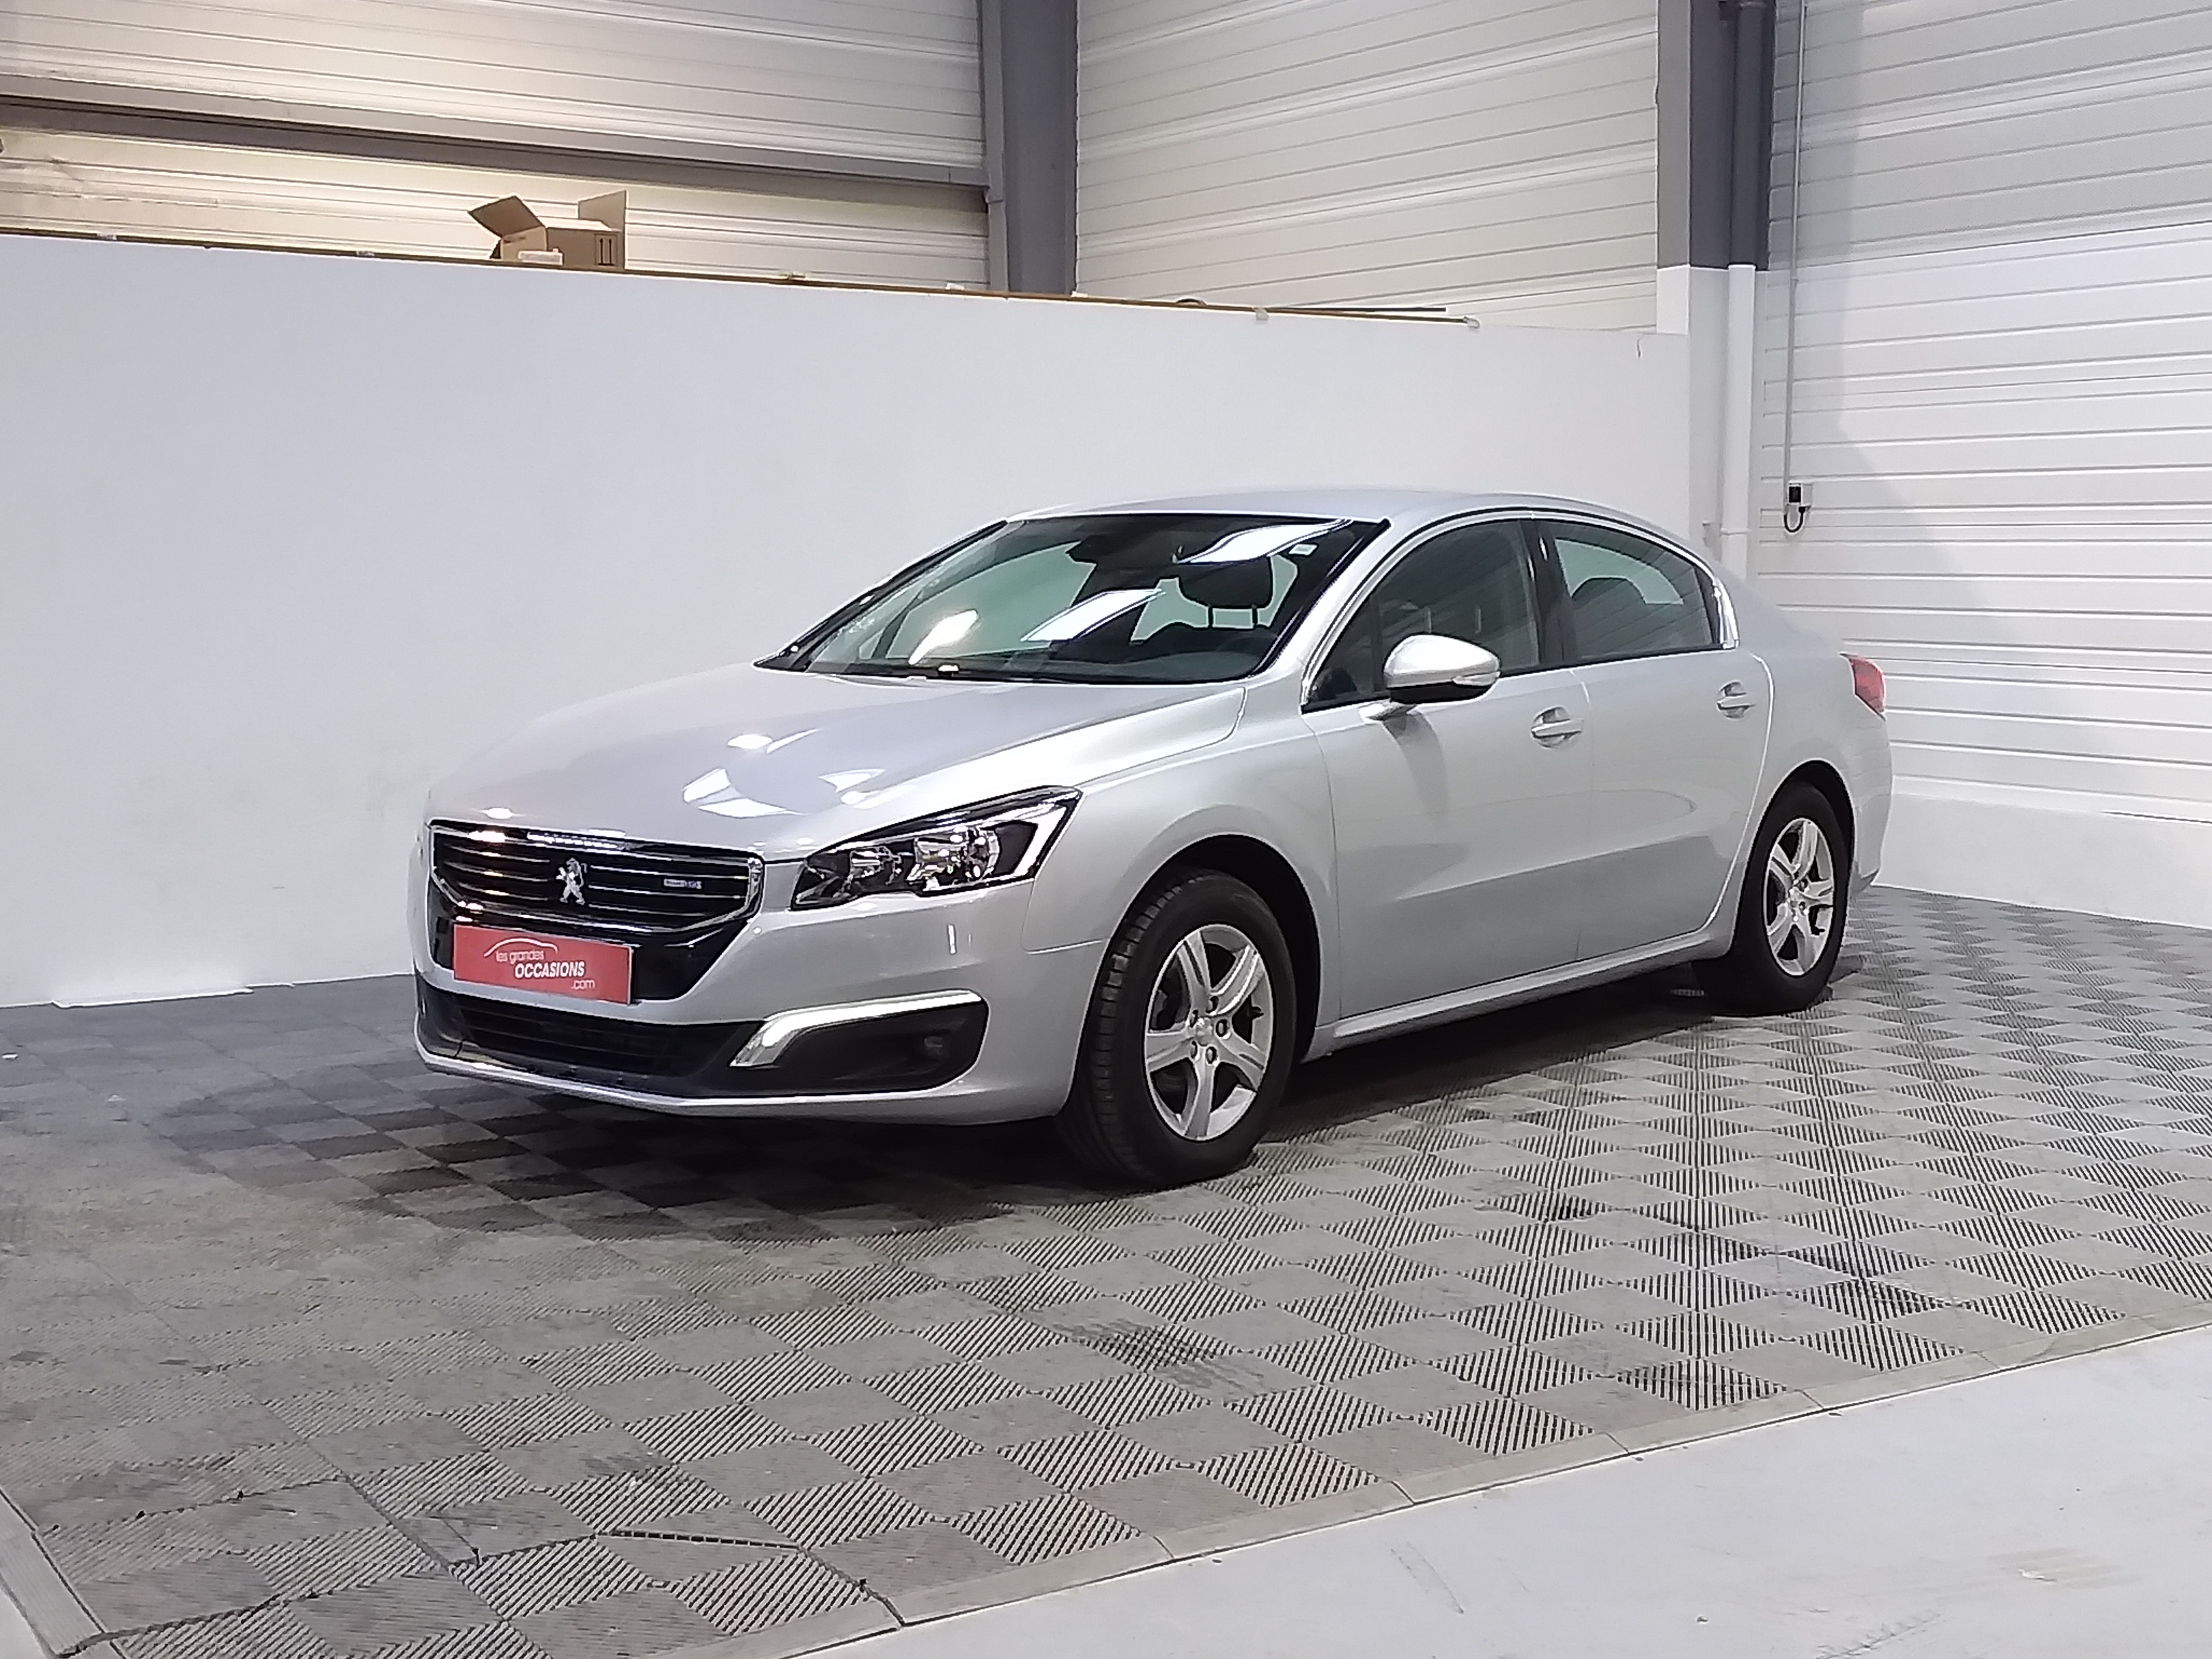 PEUGEOT 508 BUSINESS 1.6 BlueHDi 120ch Active Business S&S d'occasion